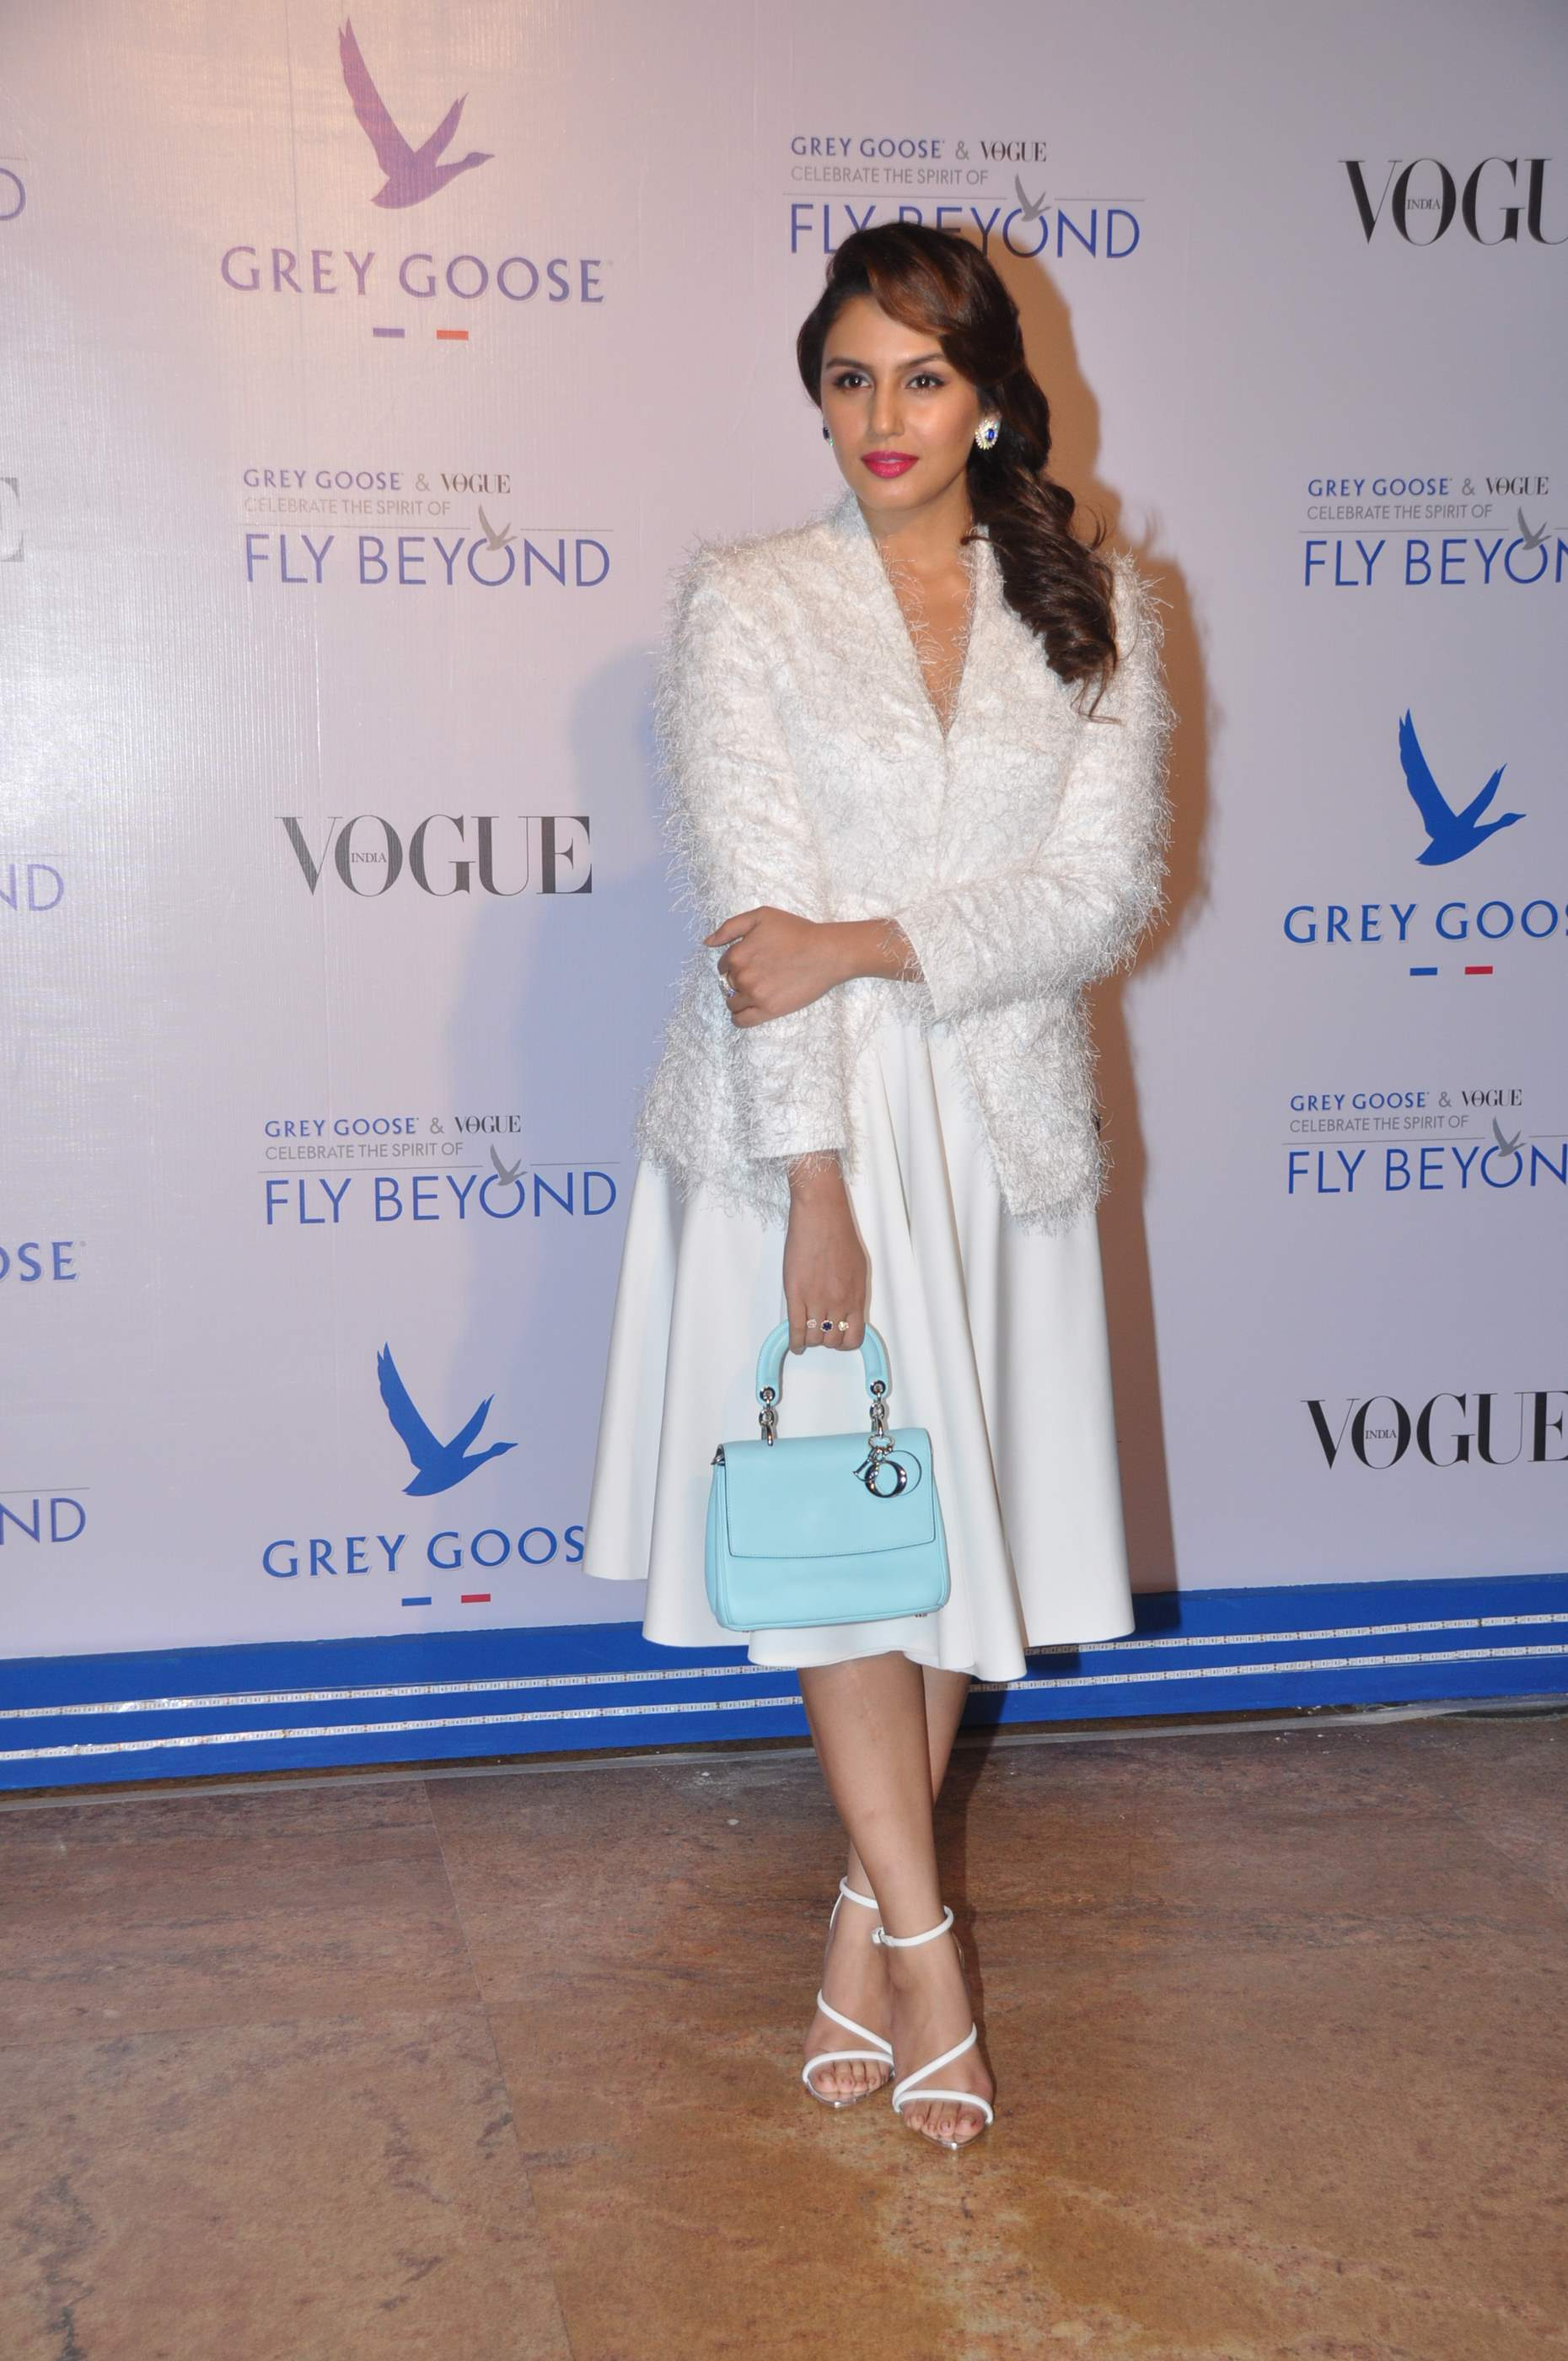 Grey Goose and Vogue India celebrate spirit of Fly Beyond with a star-studded awards night